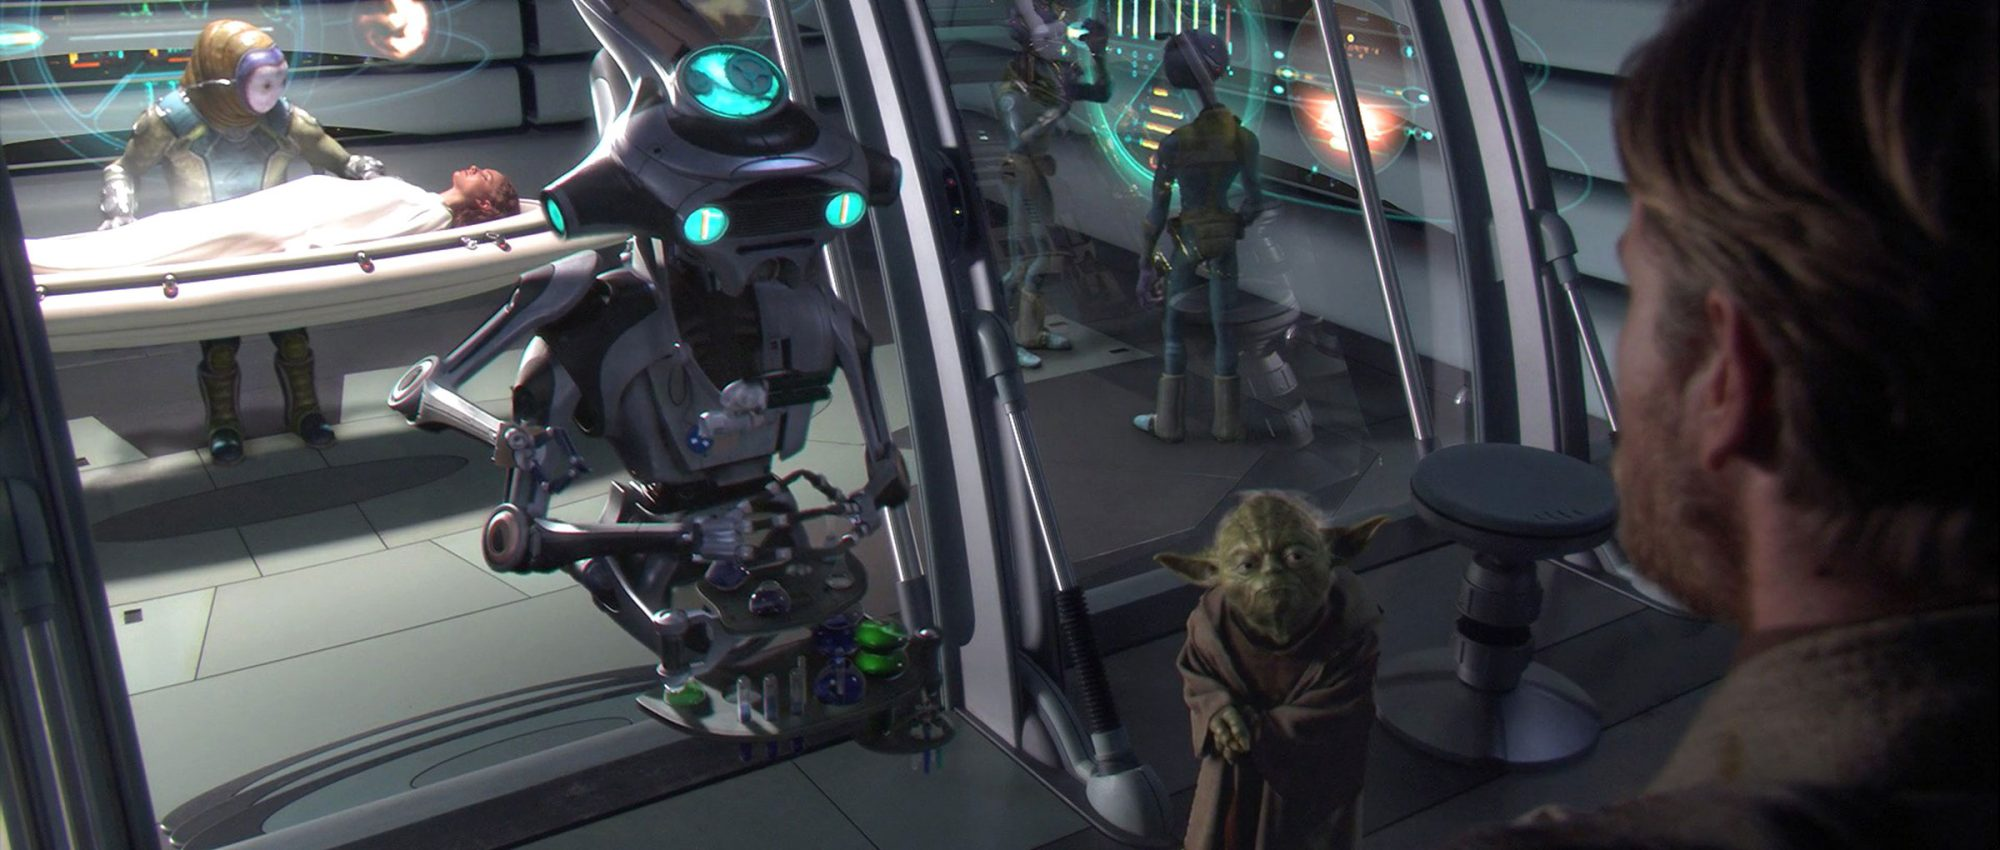 23. GH-7 medical droid (Revenge of the Sith)